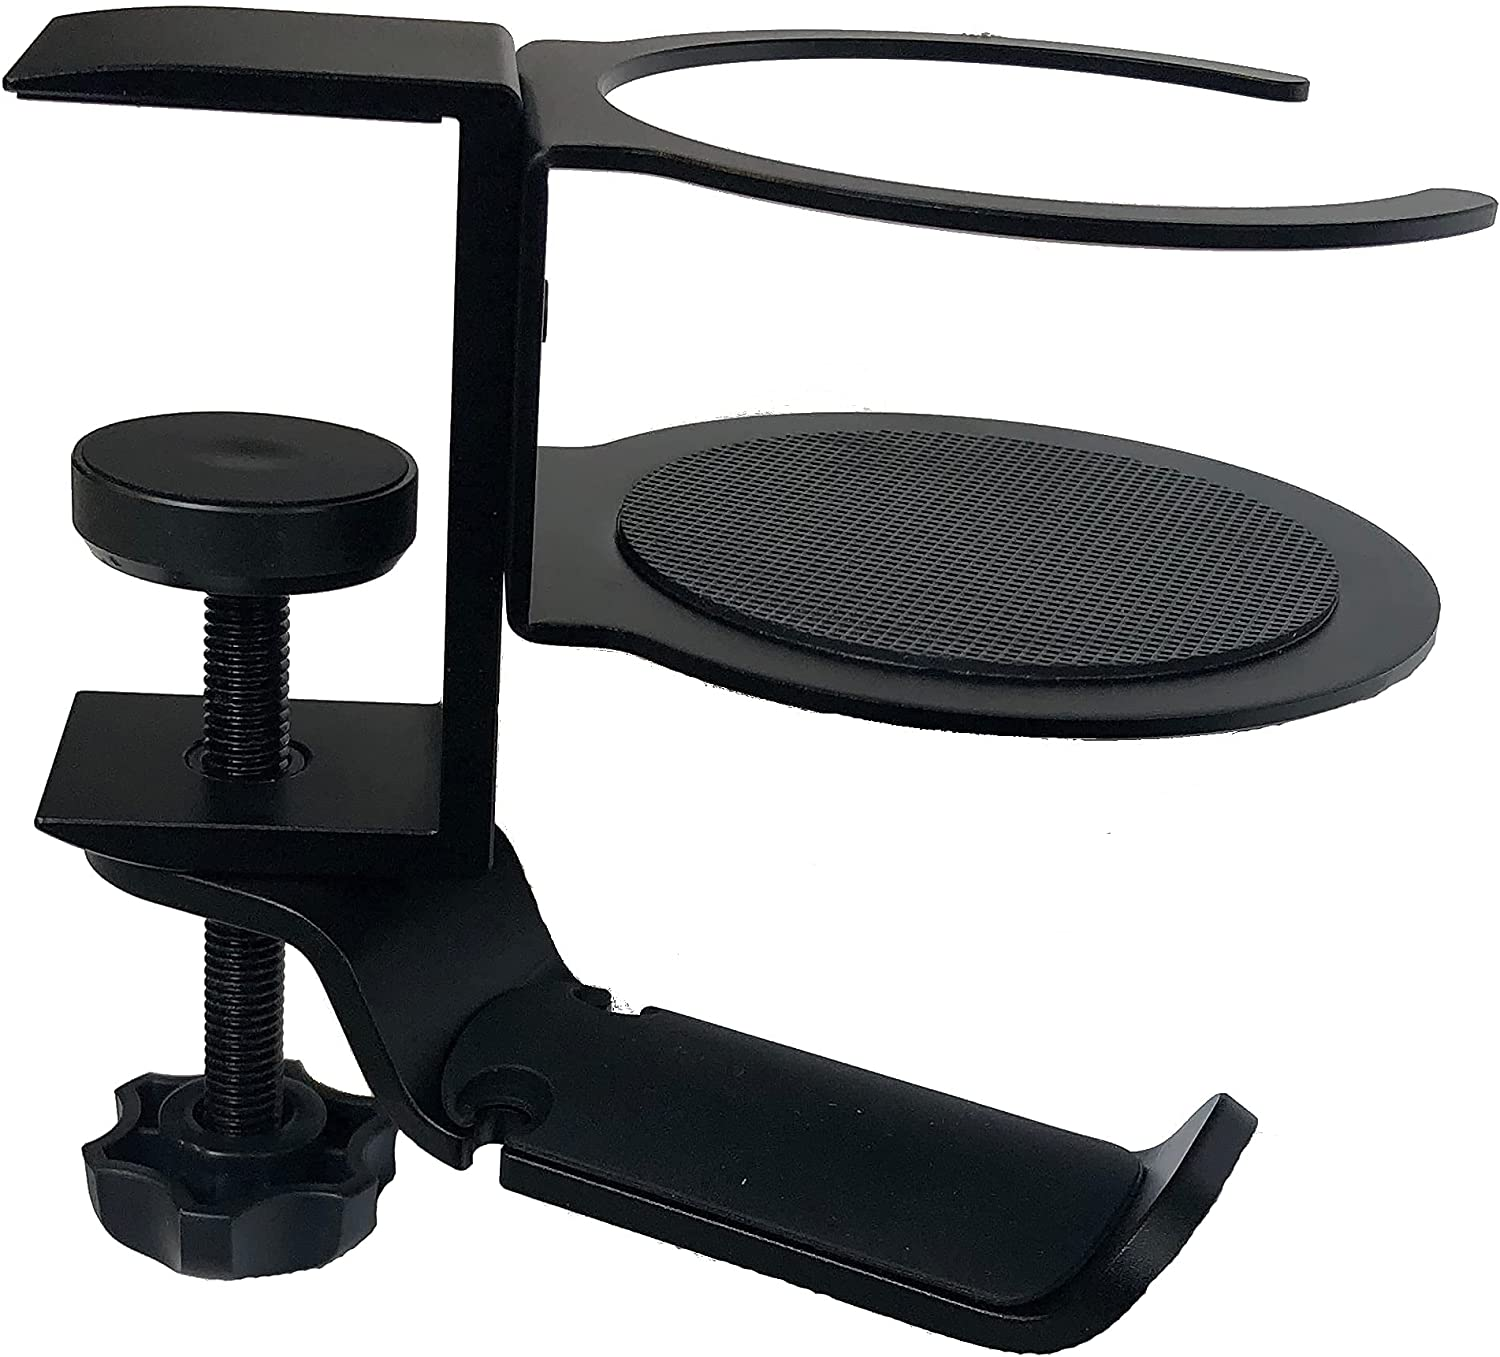 Headset Hanger & Drink Holder 2-in-1 for PC Gaming, Under Computer Desk, Table, Counter - Clamp-On - Multi-Function Black Metal Mounted Cup Stand with Multi-Purpose Contoured Rubber Headphone Padding